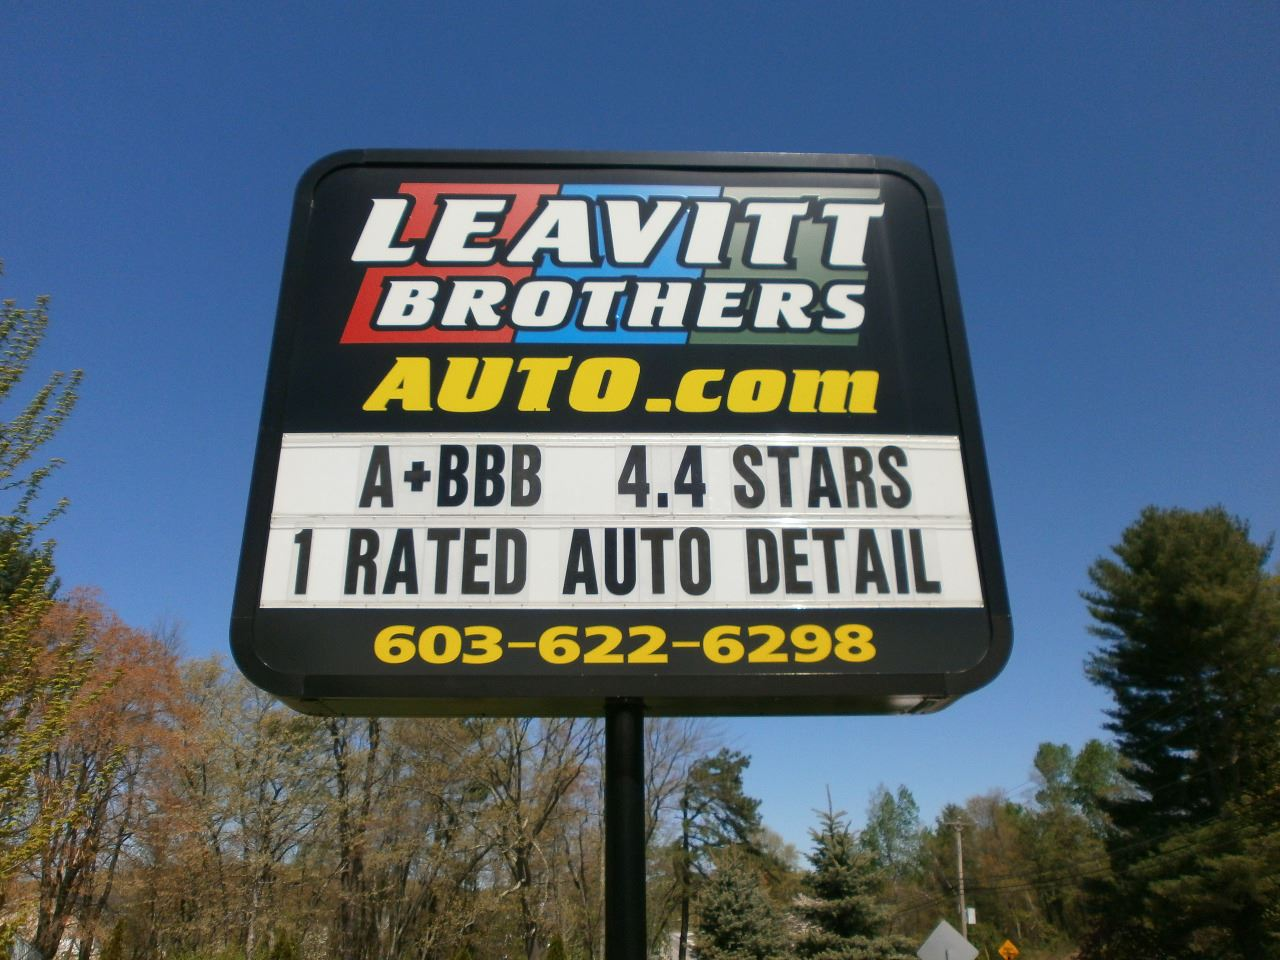 Leavitt Brothers Auto